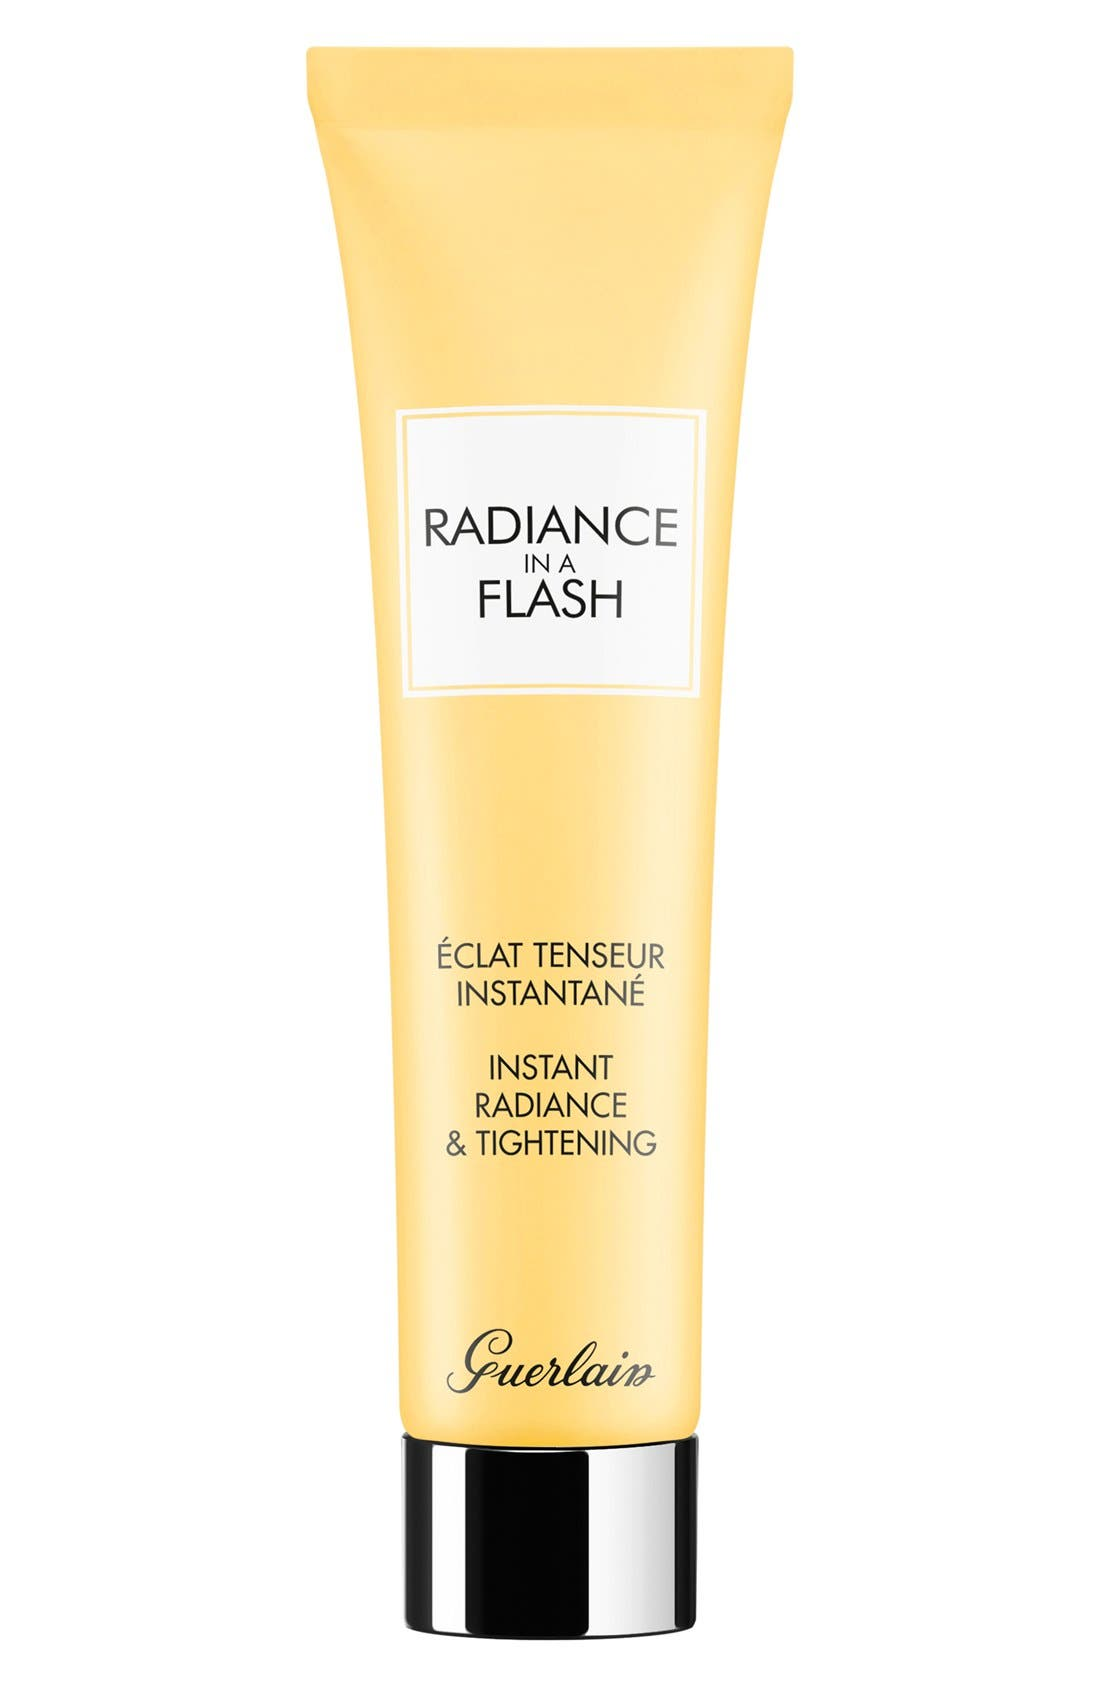 Guerlain 'Radiance in a Flash' Instant Radiance & Tightening